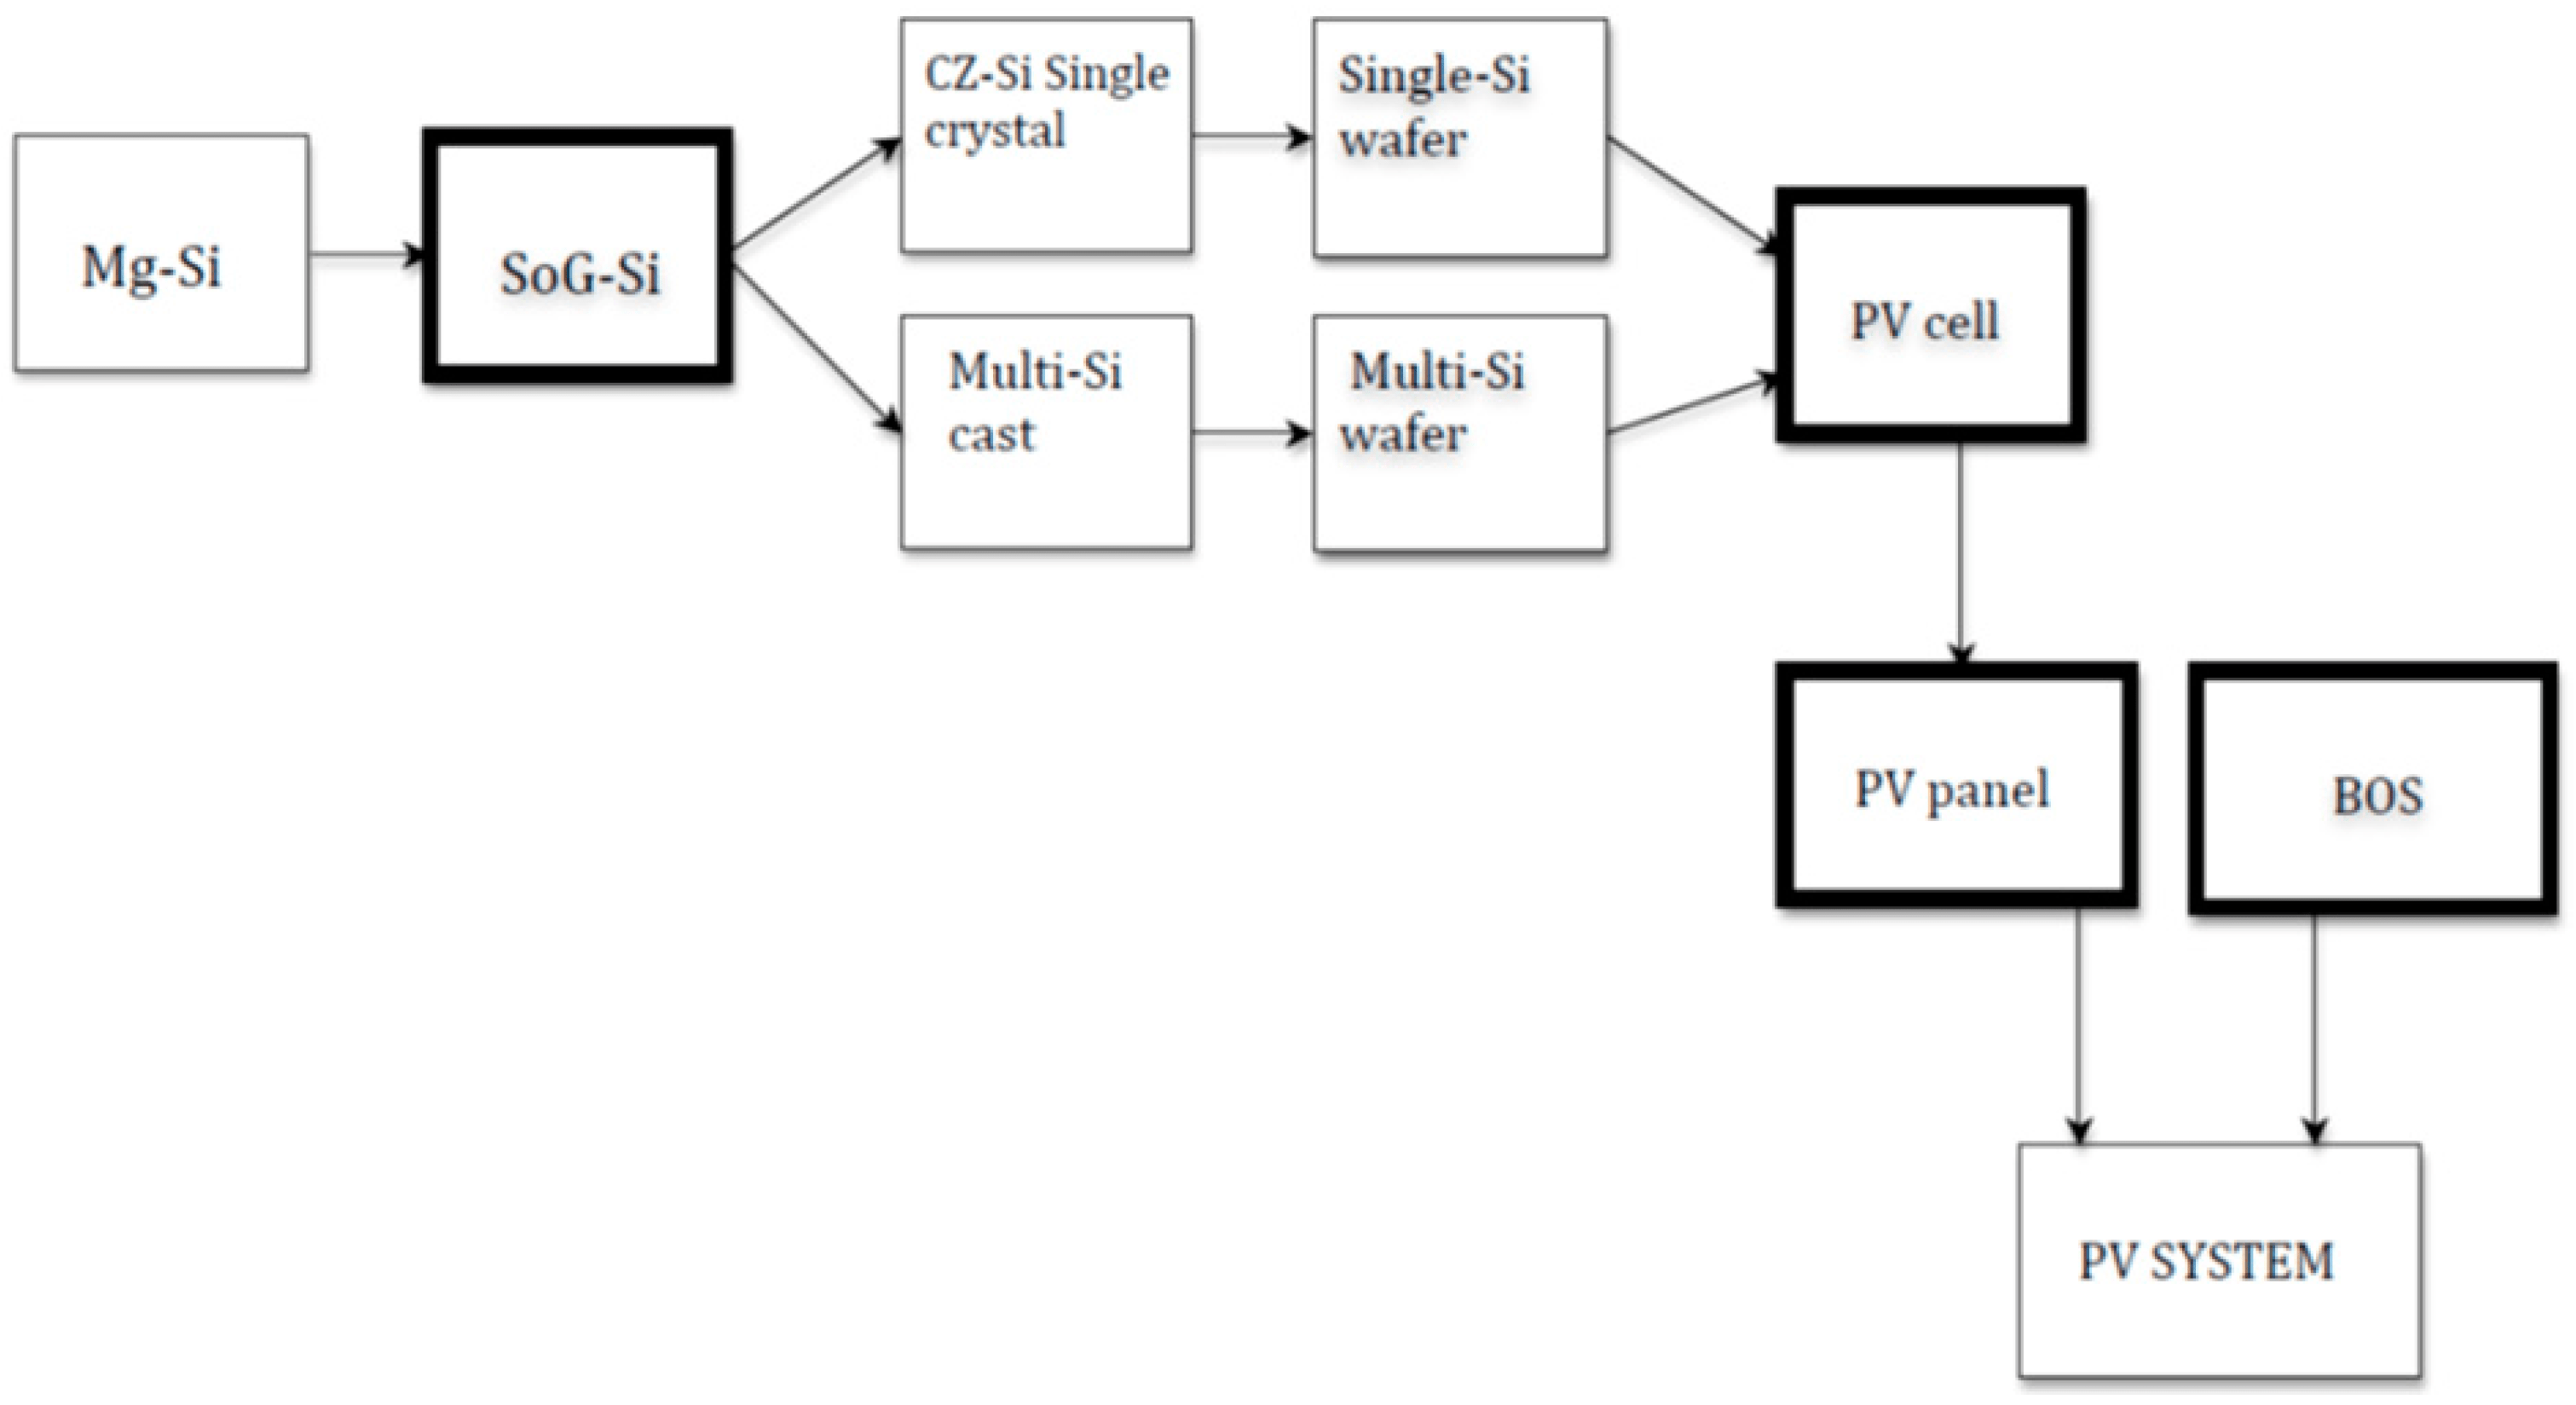 photovoltaic pv system photovoltaic diagram back photovoltaic pv